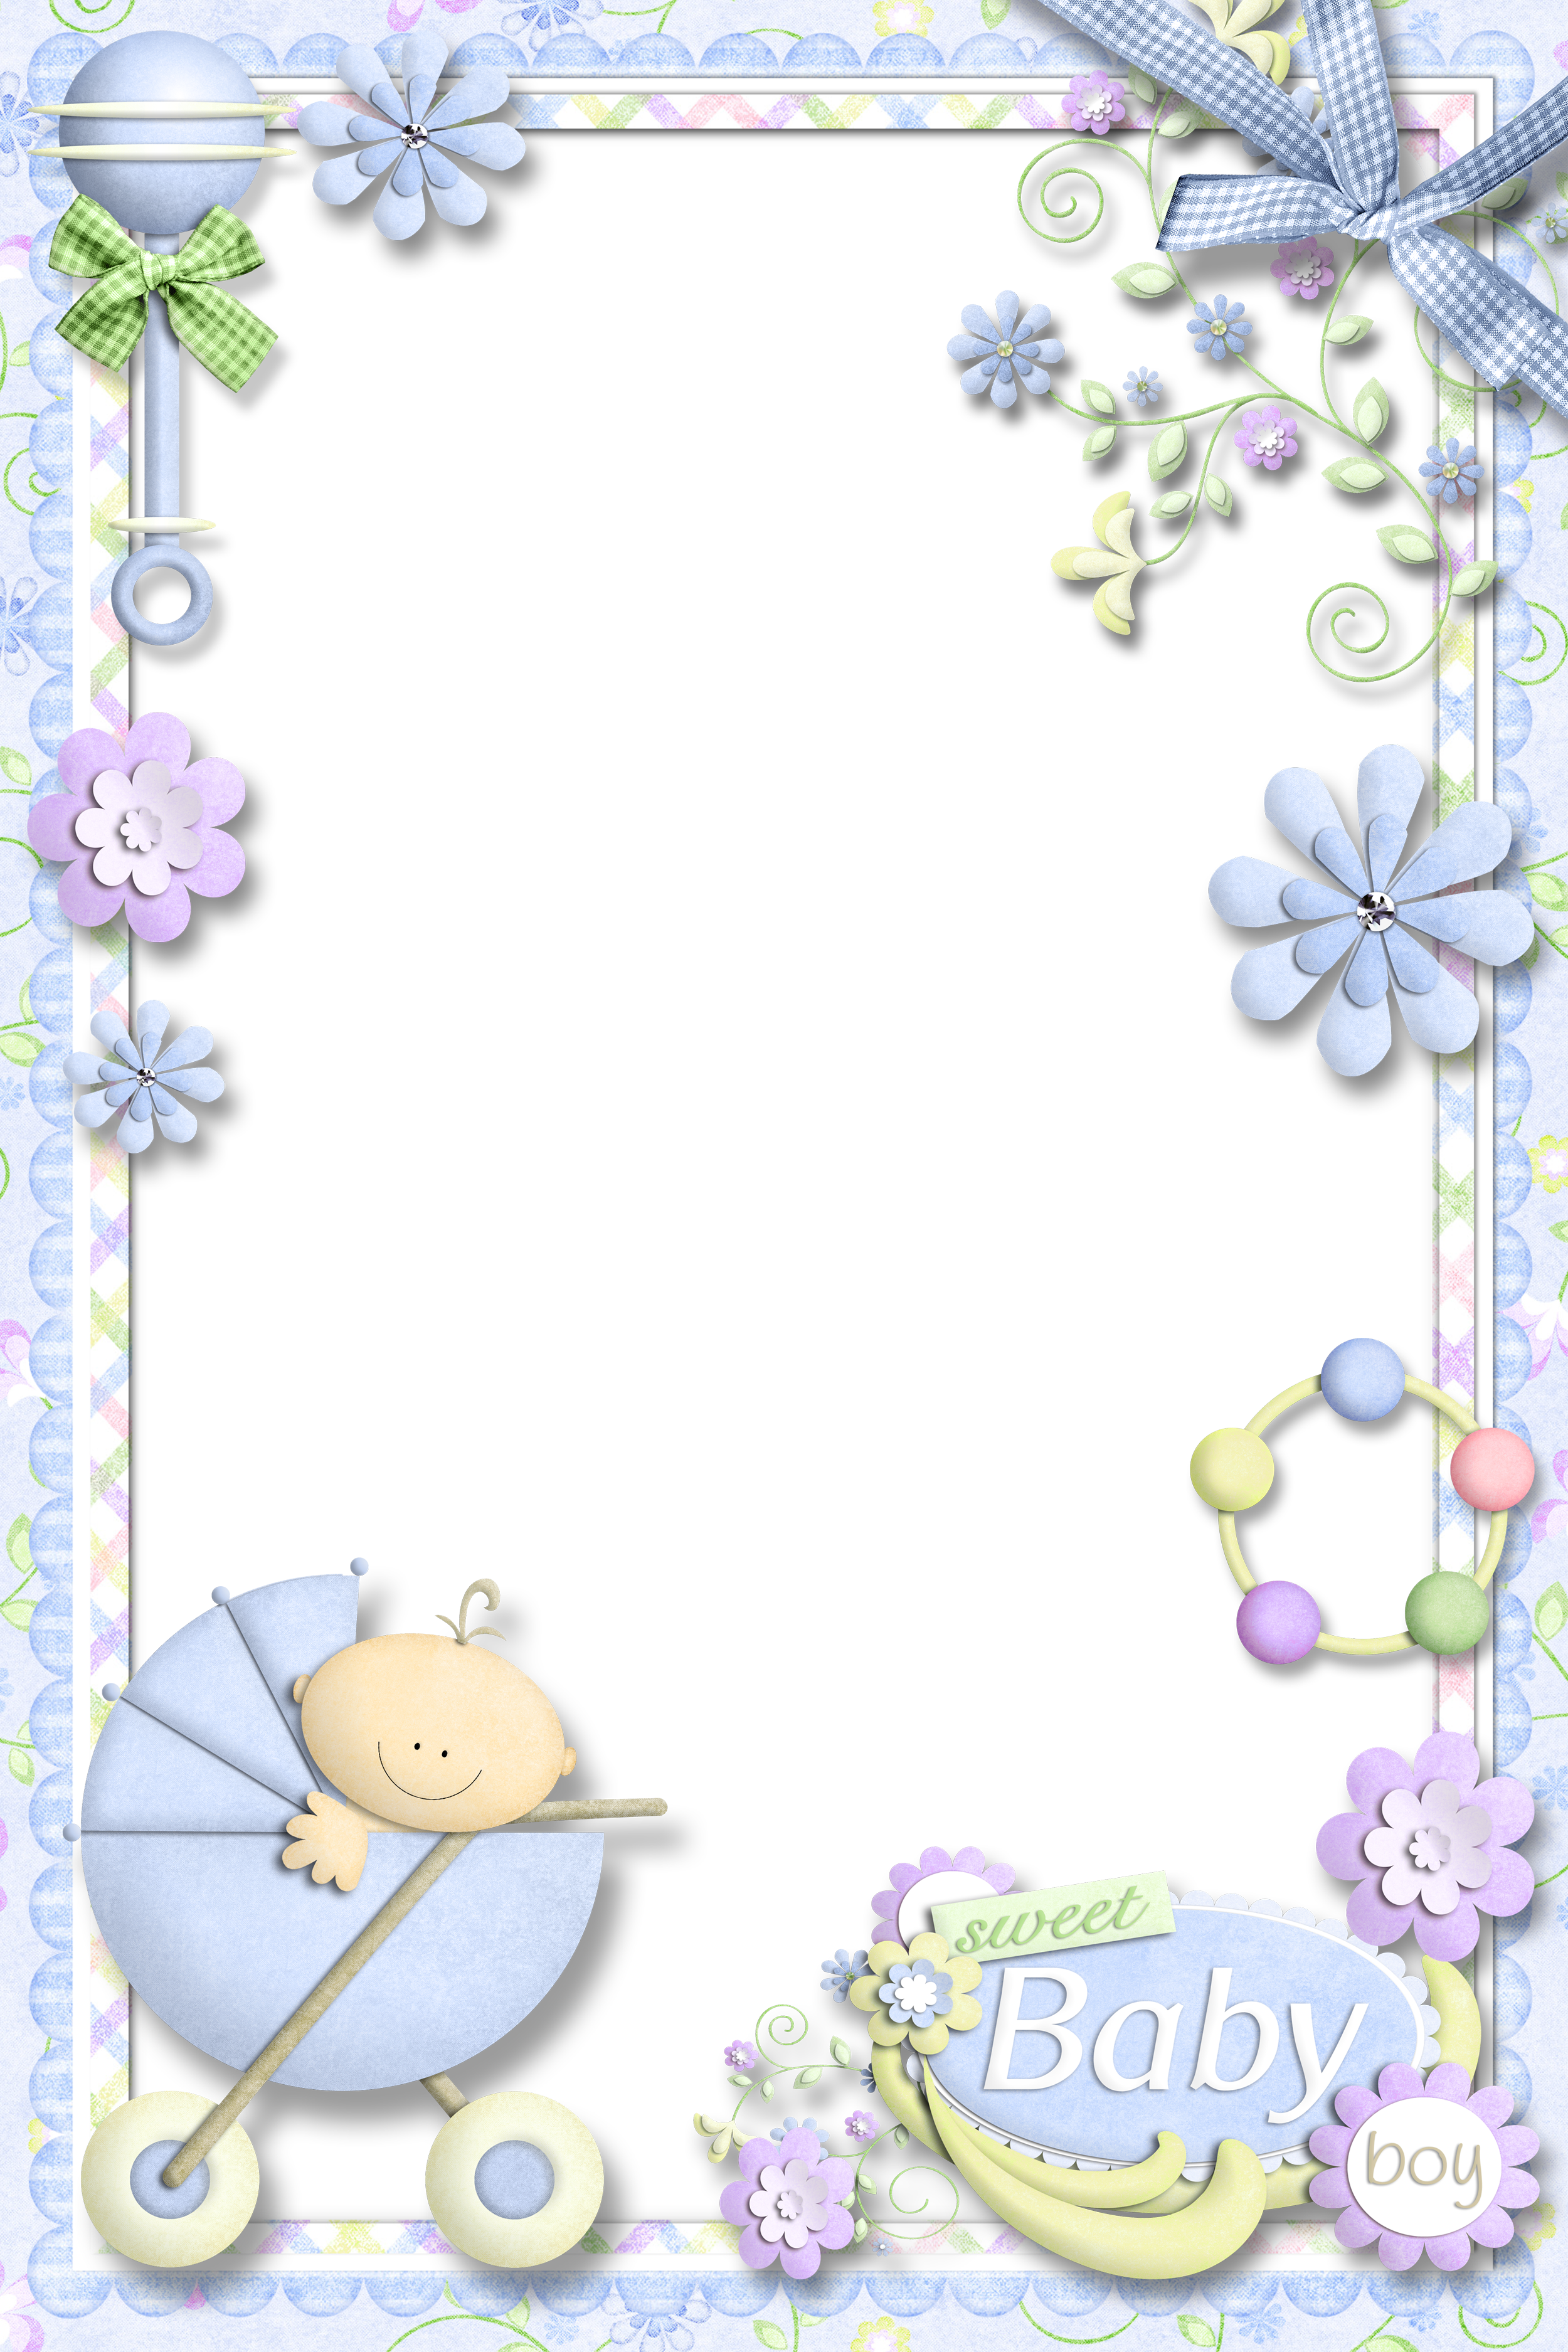 Photo for baby boy. Clipart gallery photograph frame